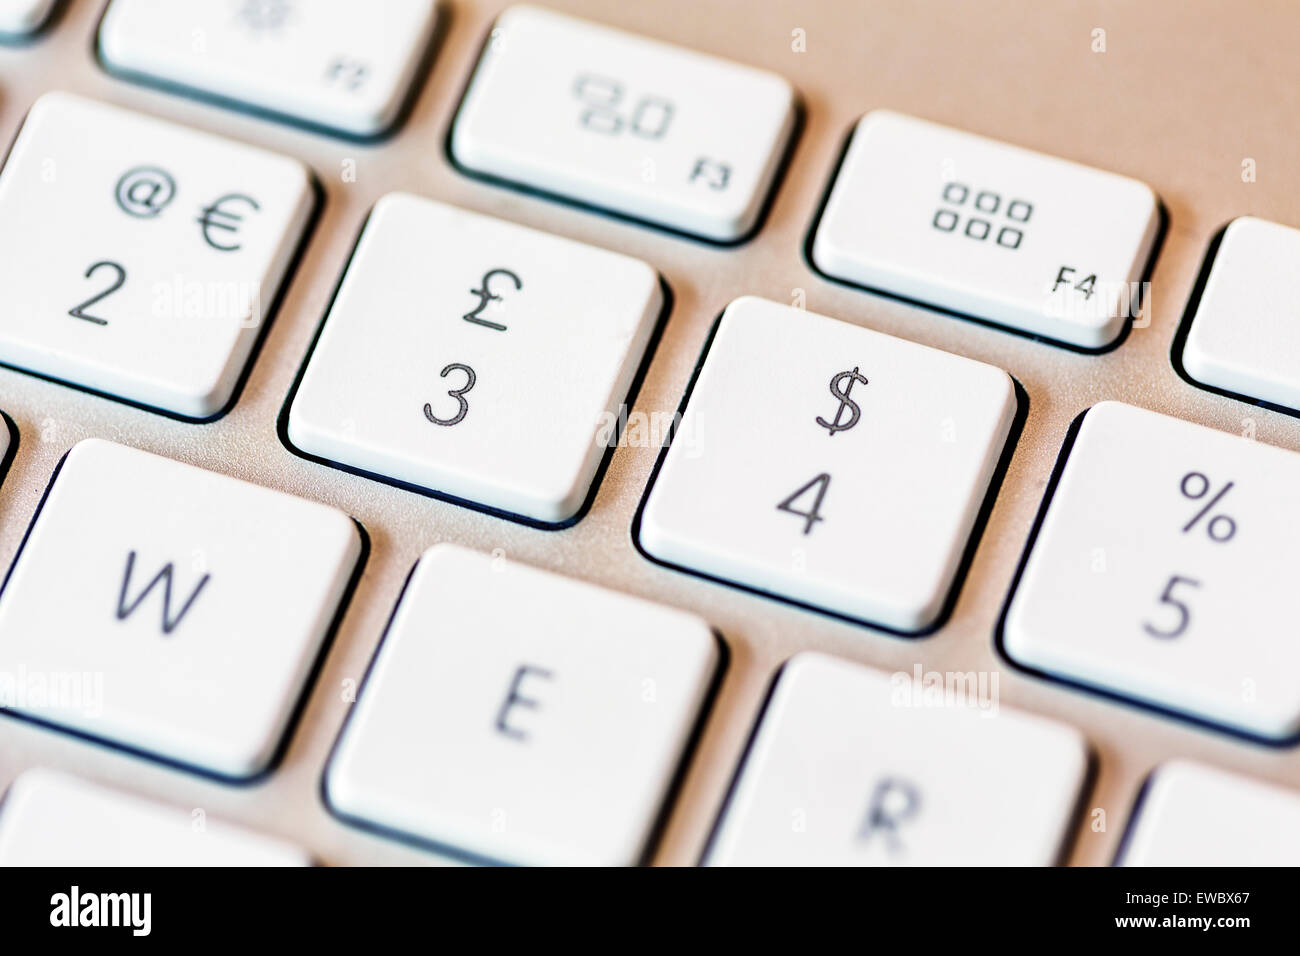 Euro Pound Dollar and Percent signs on a computer keyboard - Stock Image